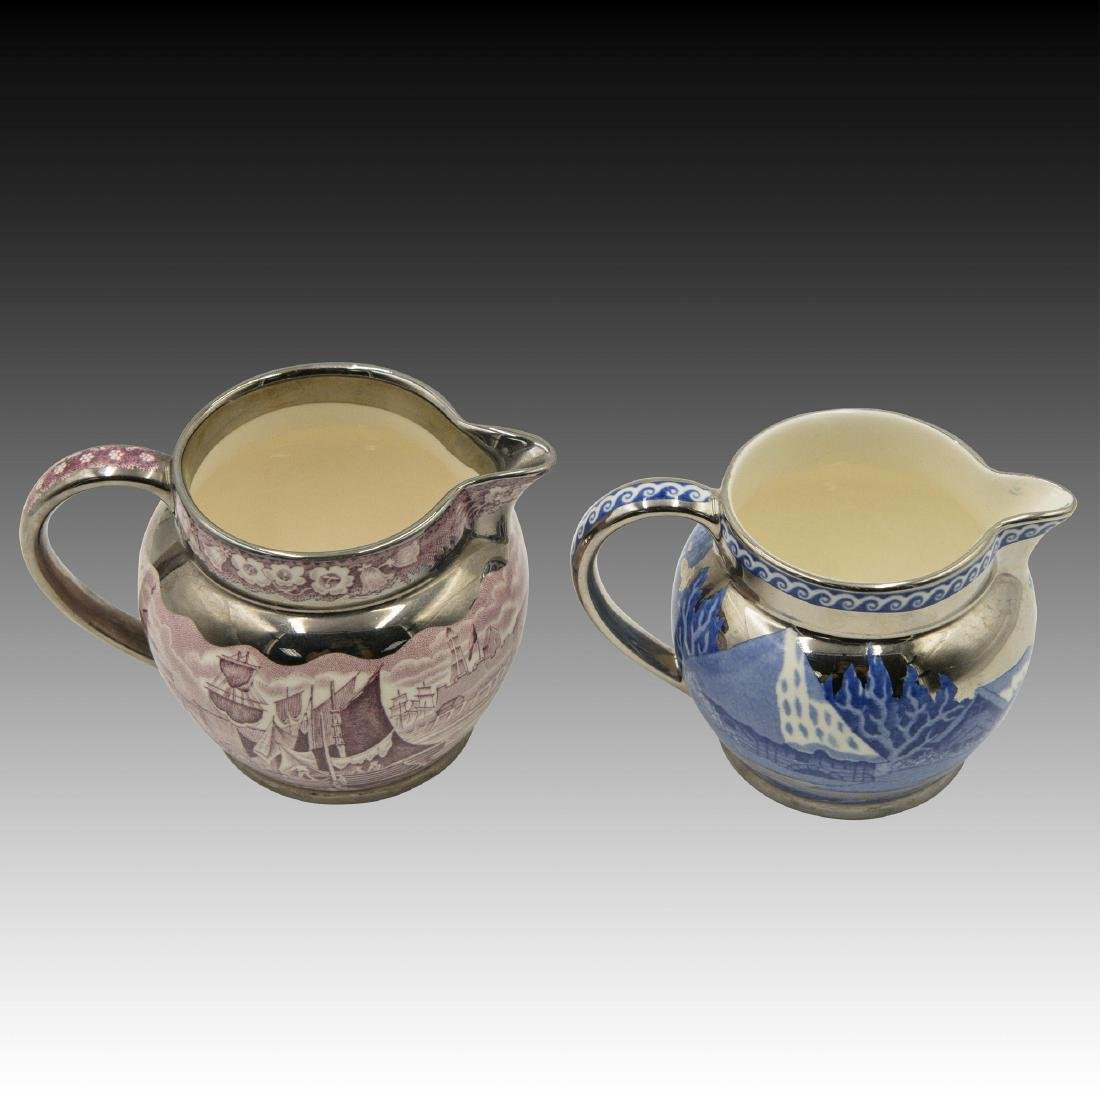 2 Wedgwood & Barlaston Jugs in Lustre